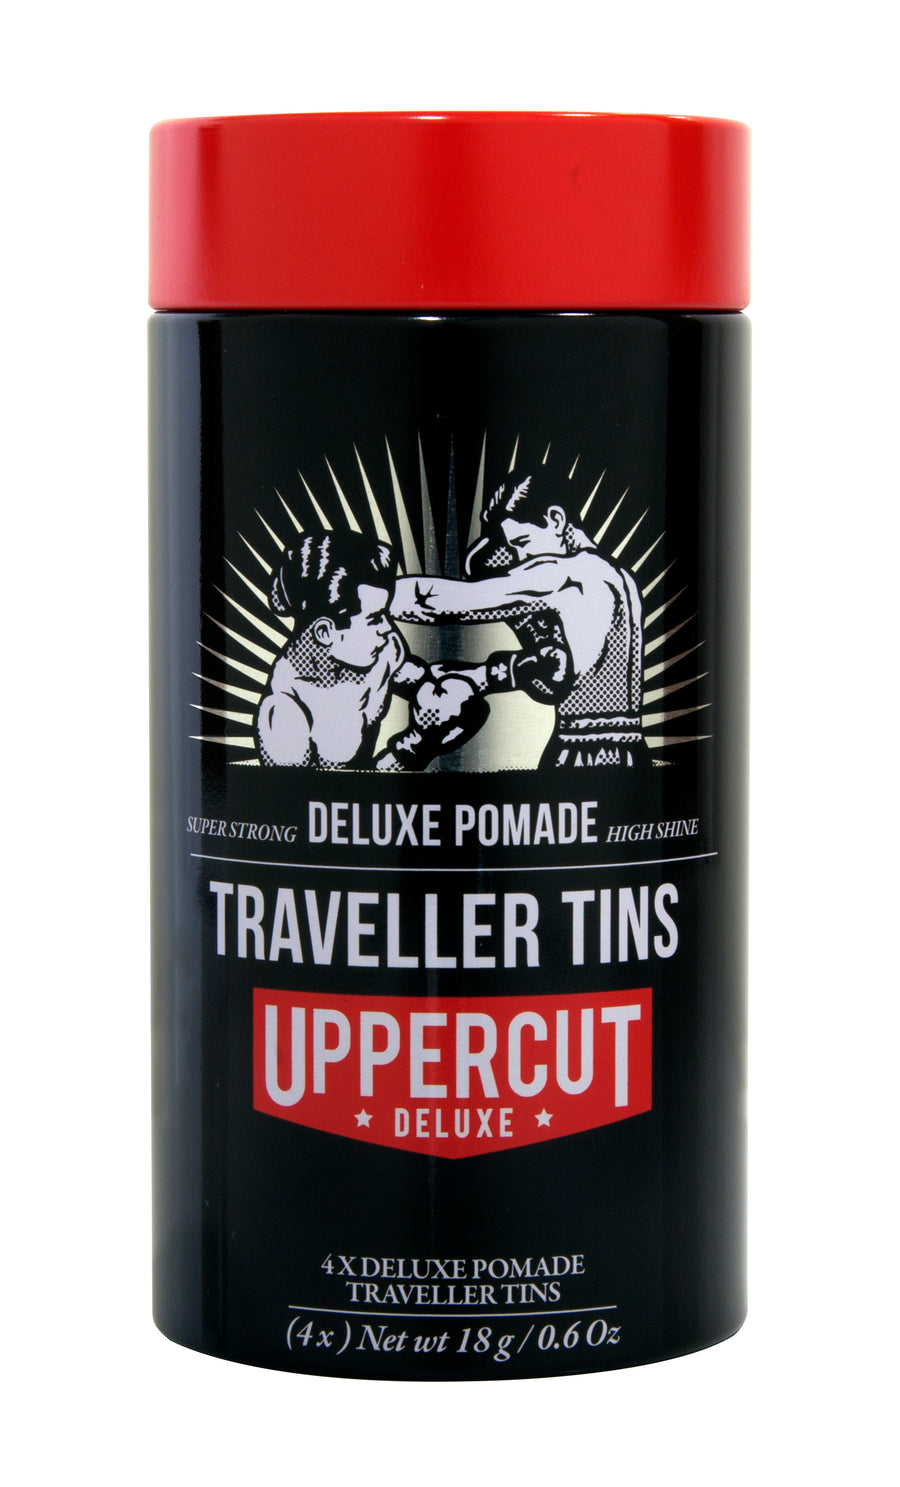 Uppercut Deluxe 'Deluxe Pomade' Traveller Tins